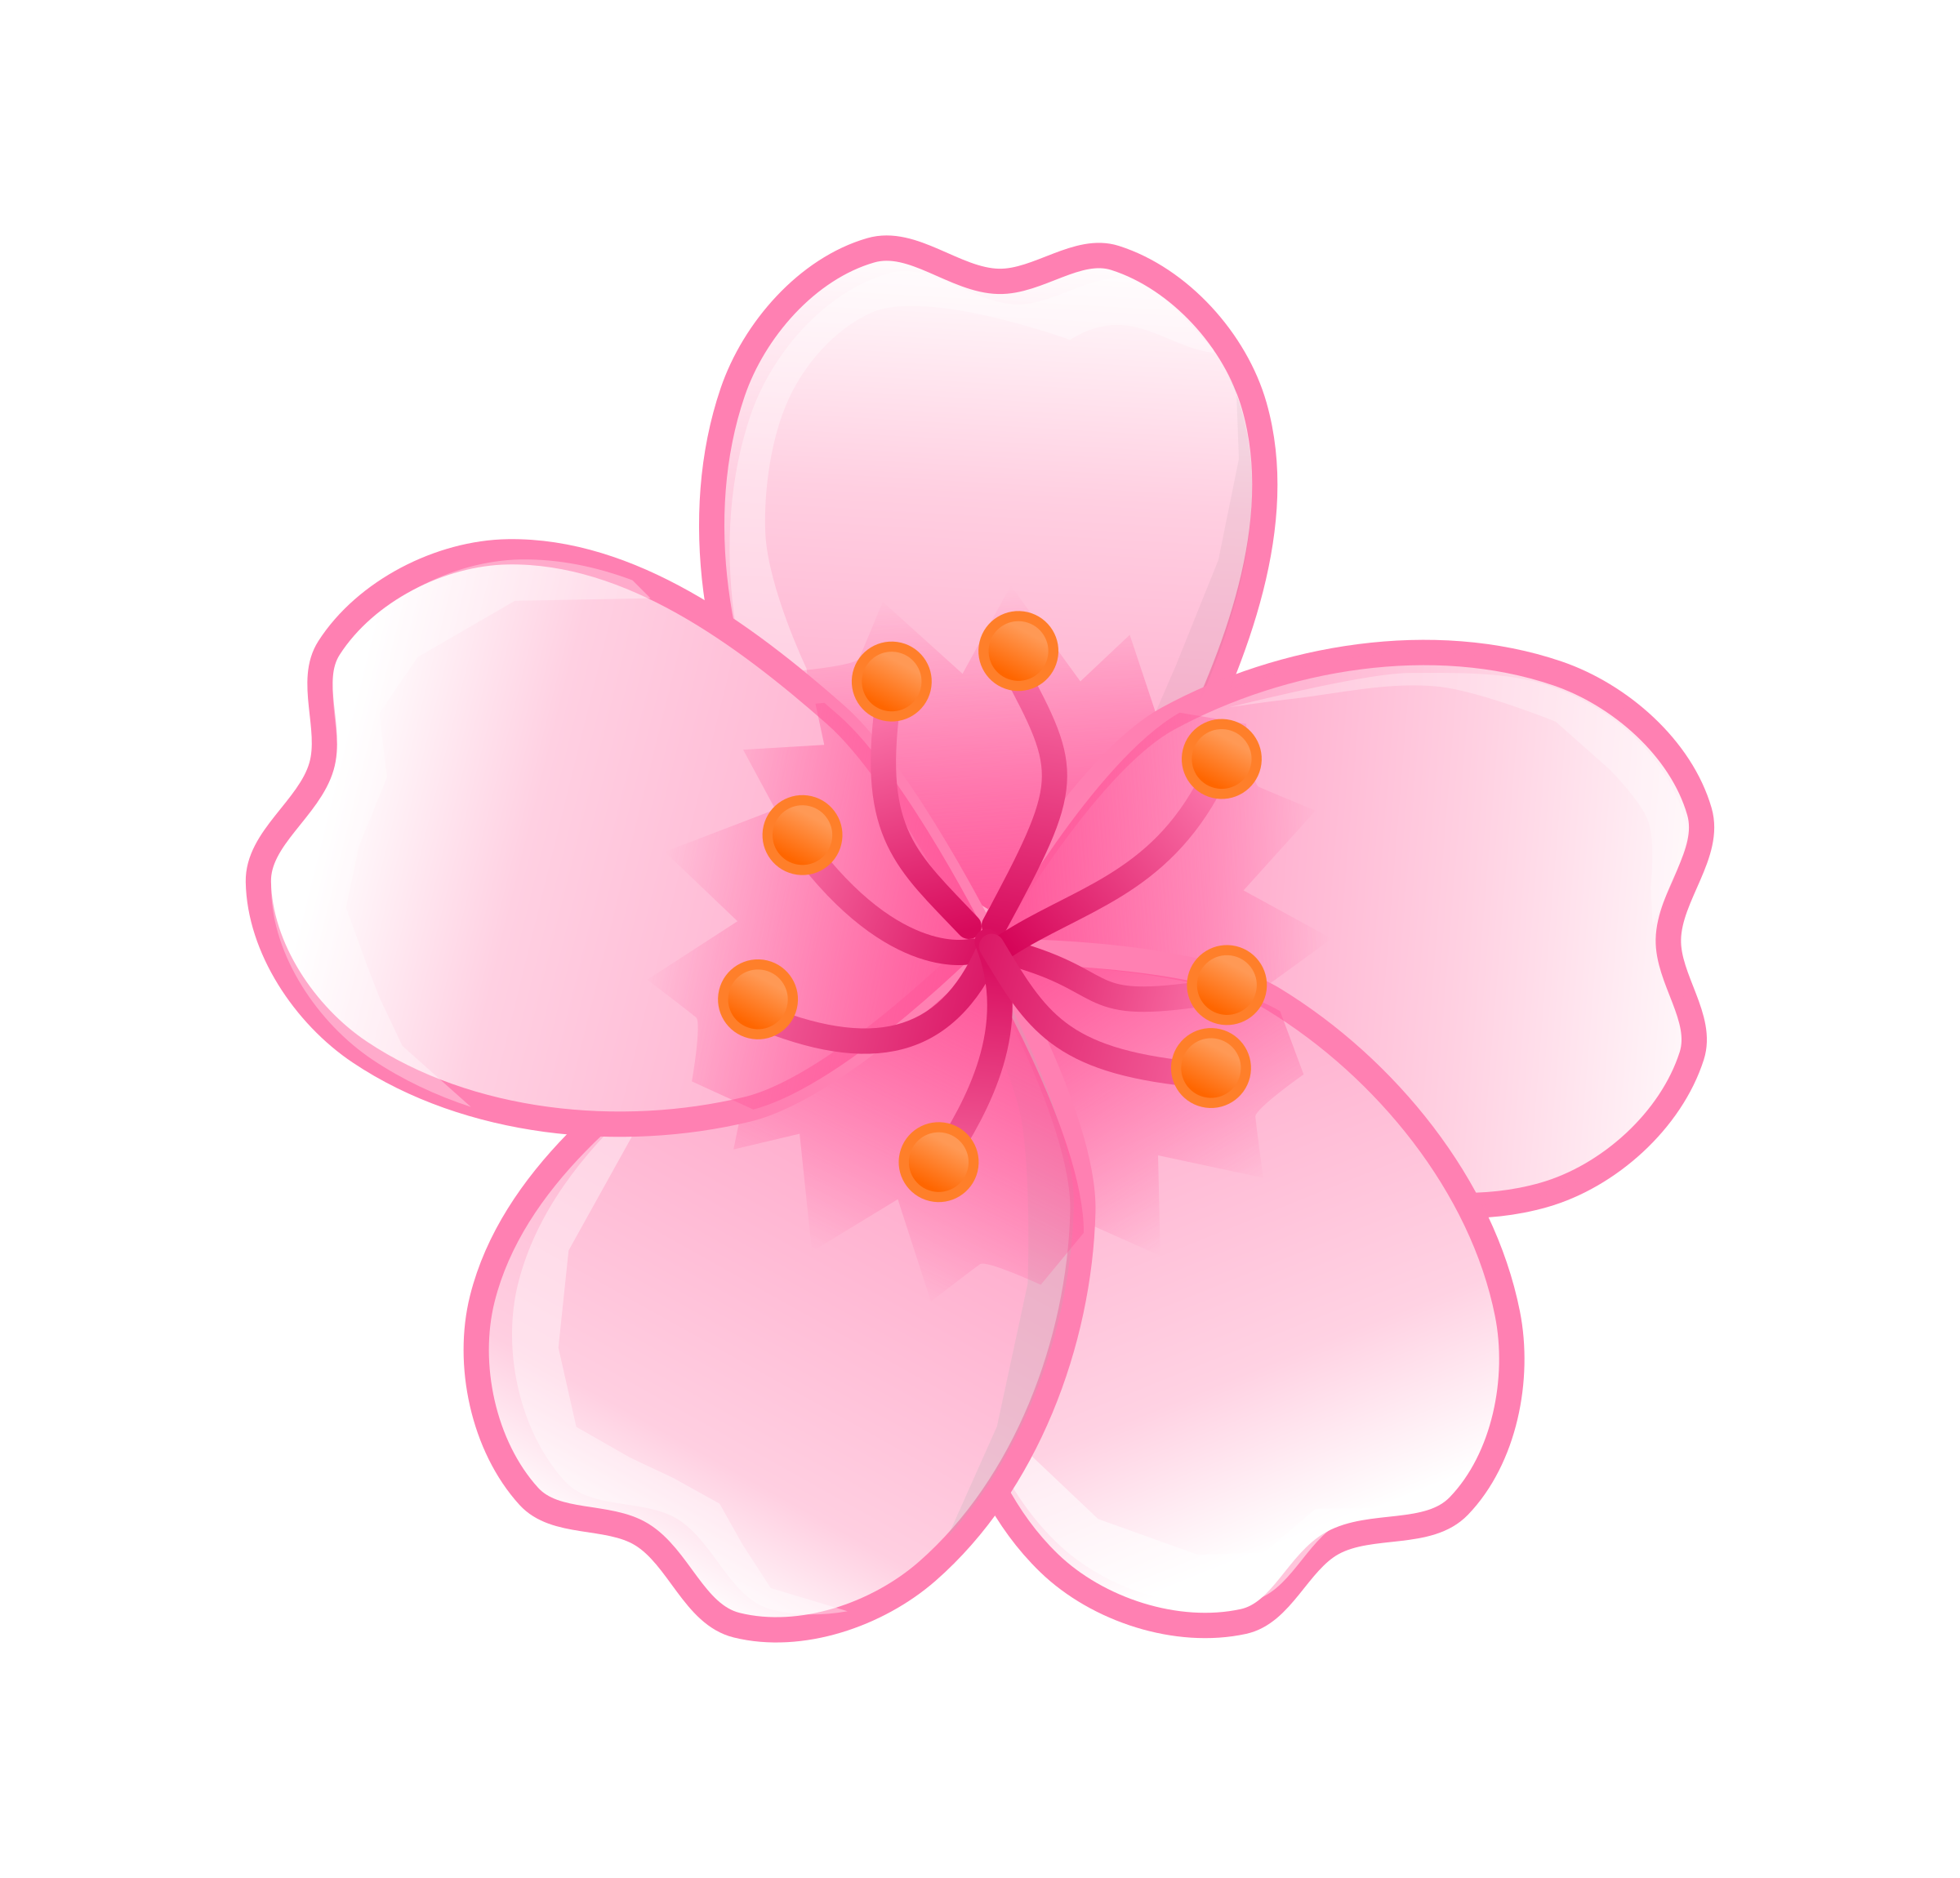 Sakura flower png. Cartoon cherry blossom tree